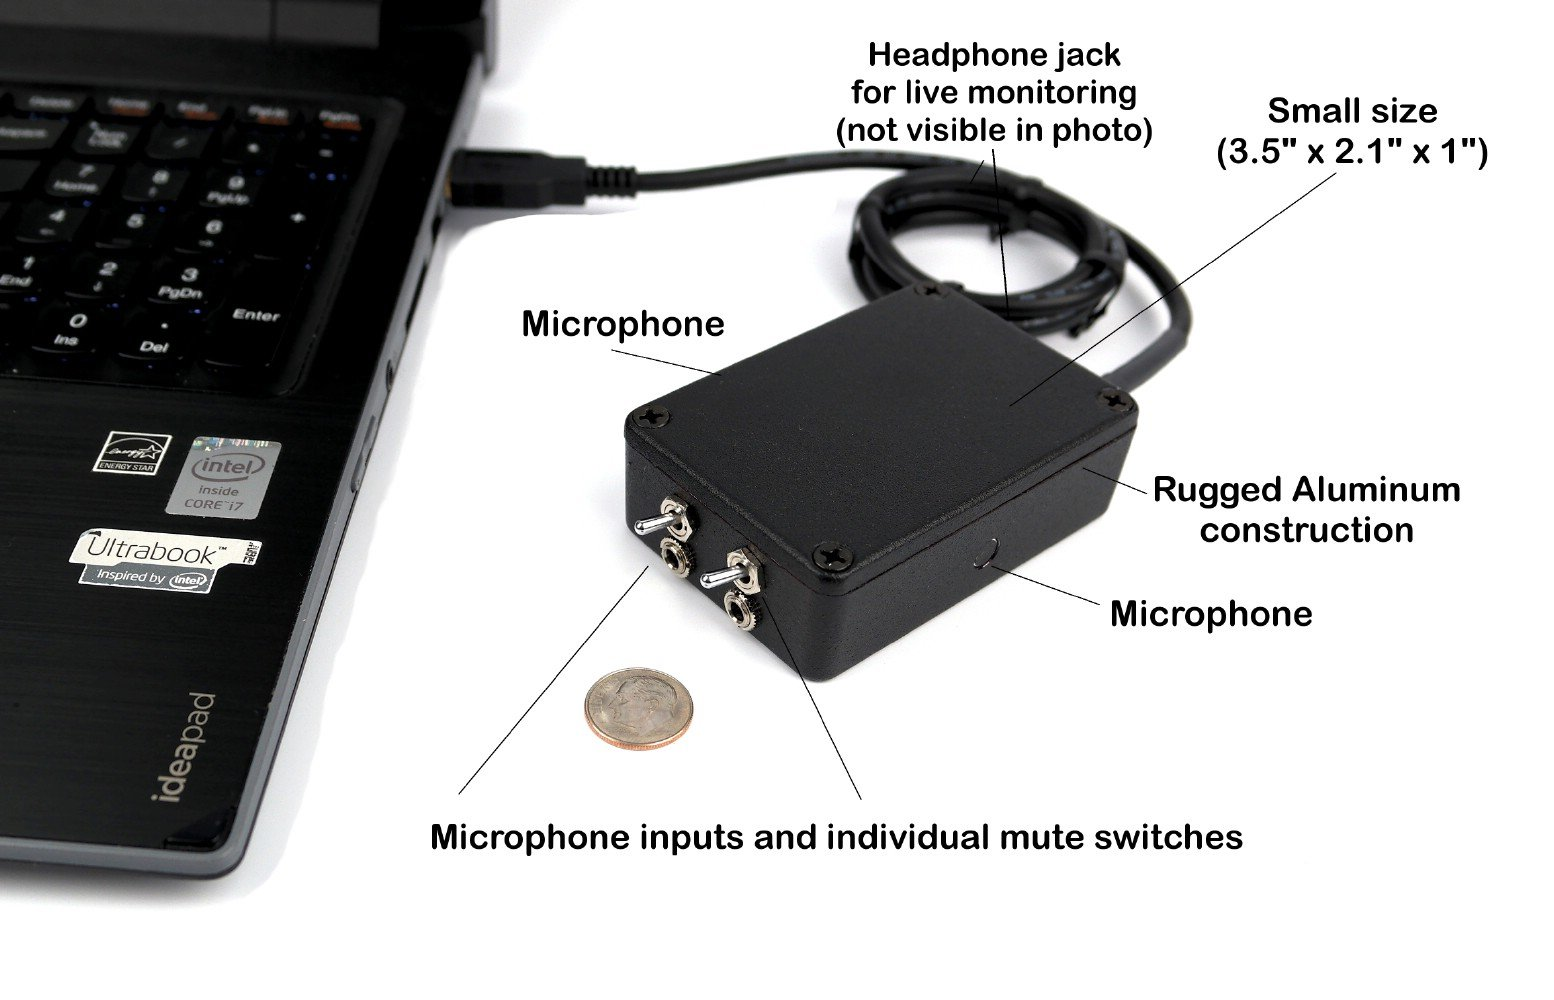 SP-USB-MIC-MODEL-10 - Sound Professionals - Ultra High Gain Mono/Stereo USB multiple microphone system and headphone amplifier w/advanced active room noise filters. by Sound Professionals